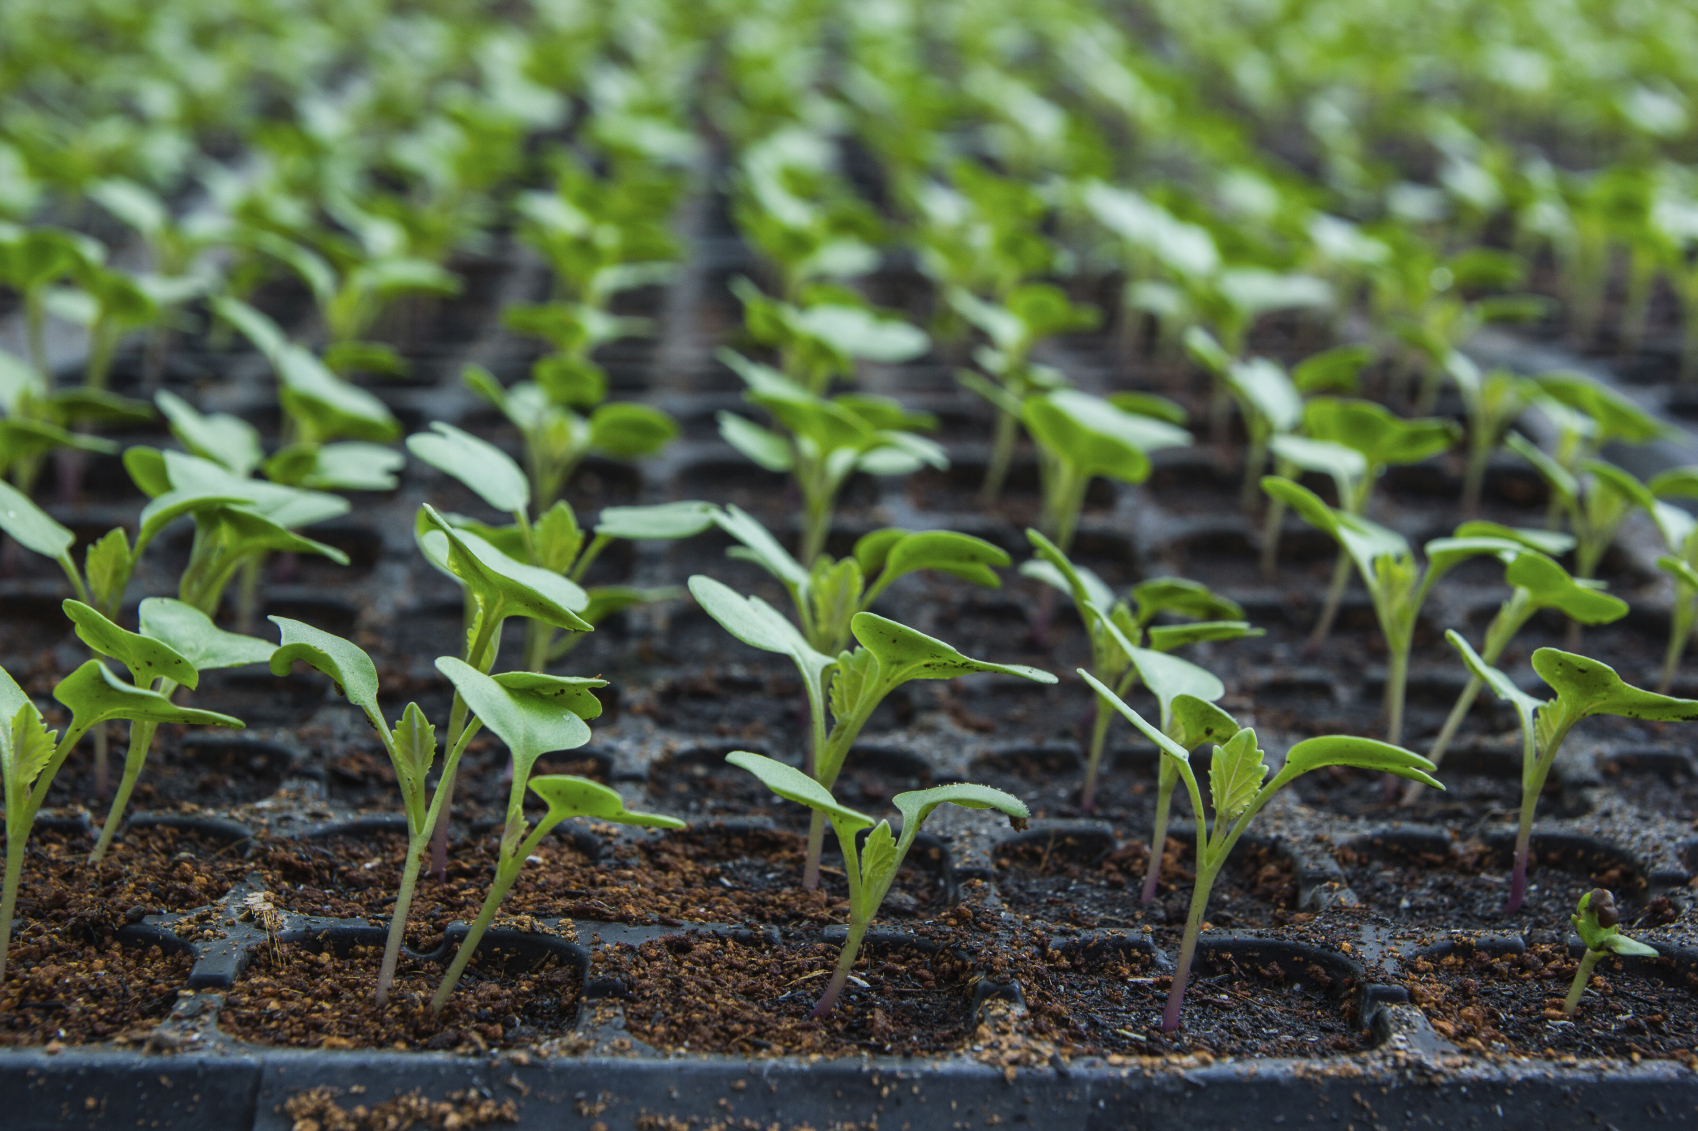 Seedlings-of-Cauliflower